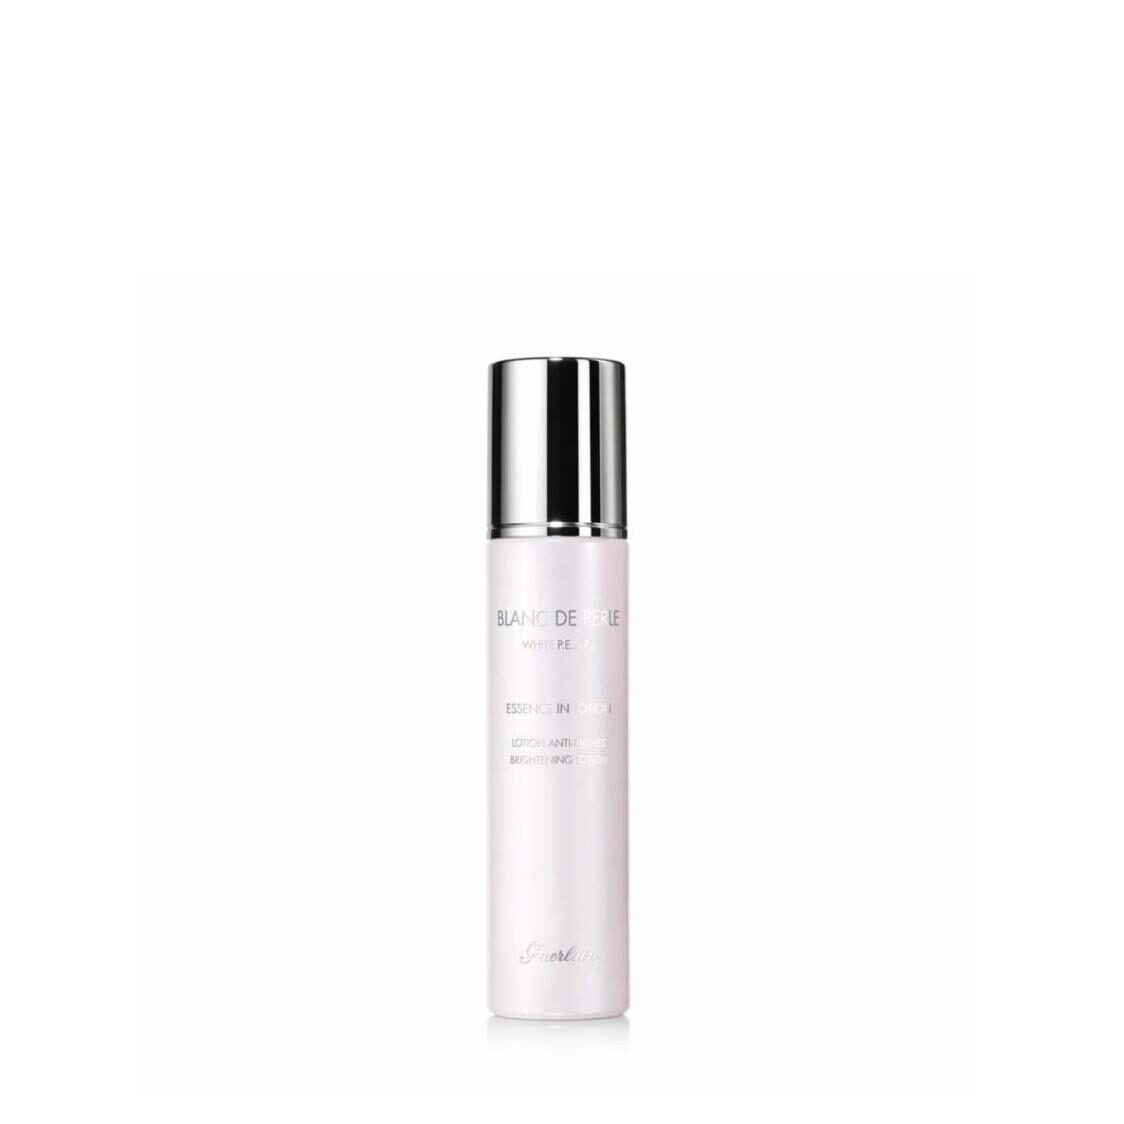 Blanc De Perle Brightening Lotion 200ml